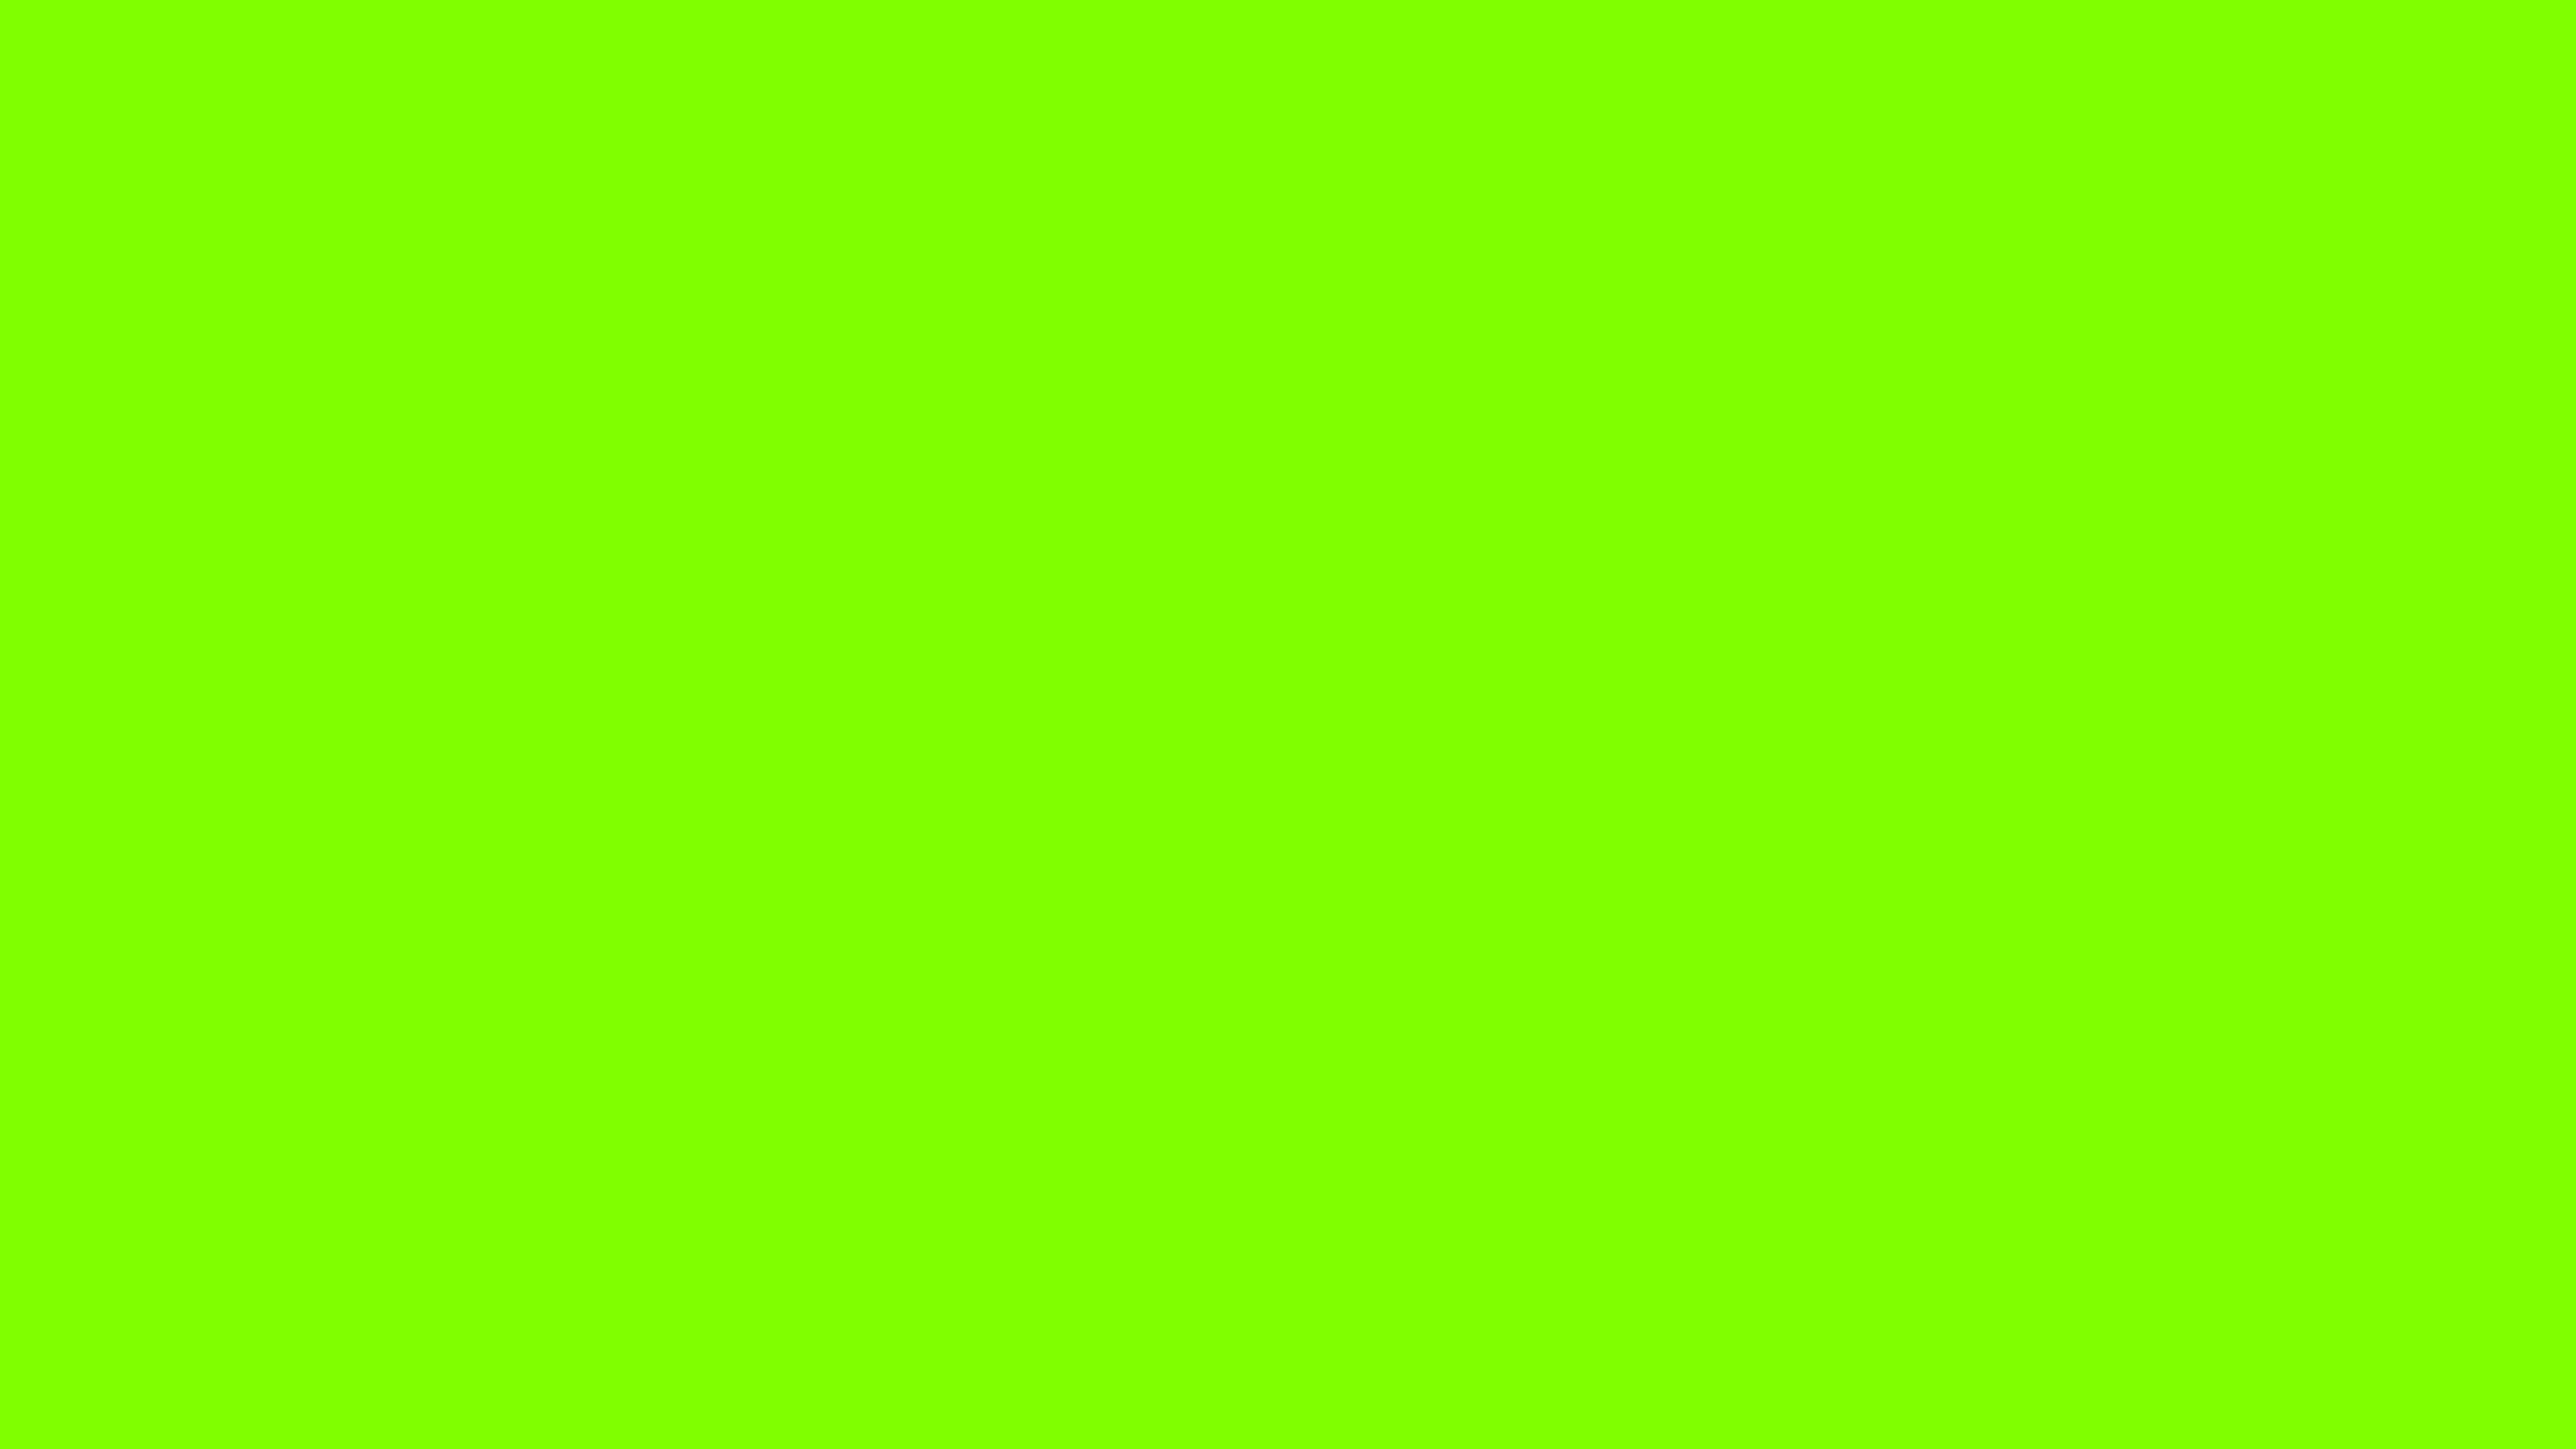 4096x2304 Chartreuse For Web Solid Color Background